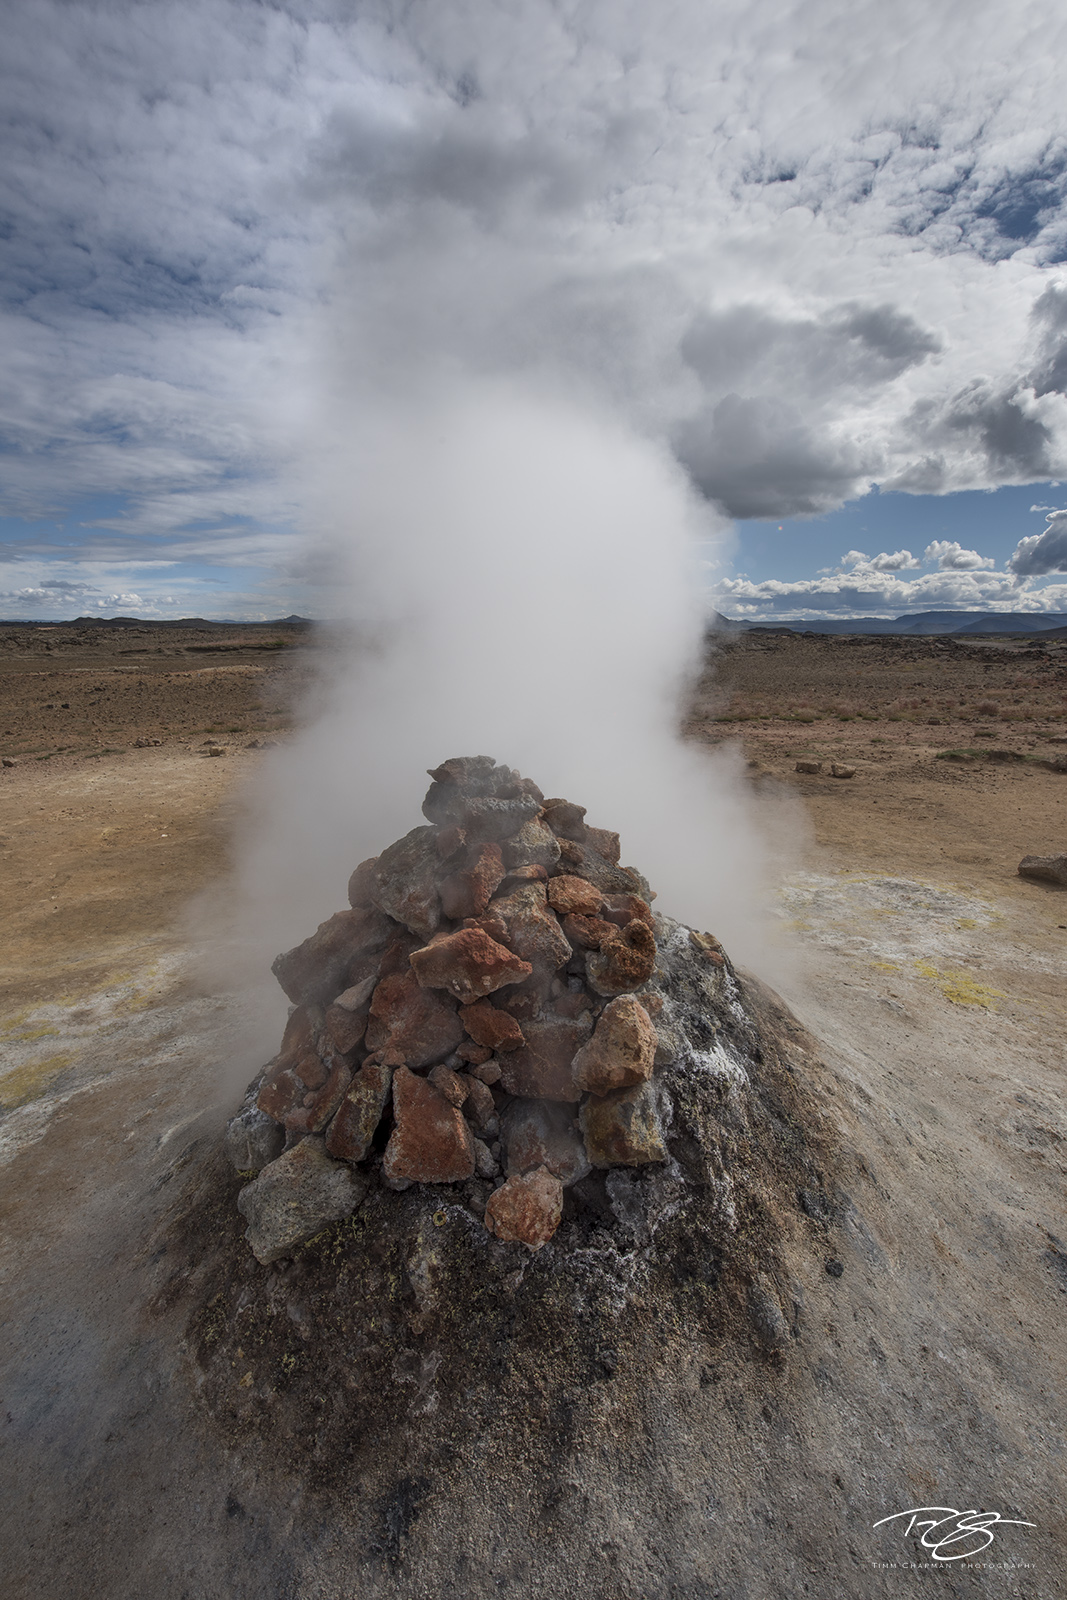 Steam is furiously released from a geothermal vent in North Iceland